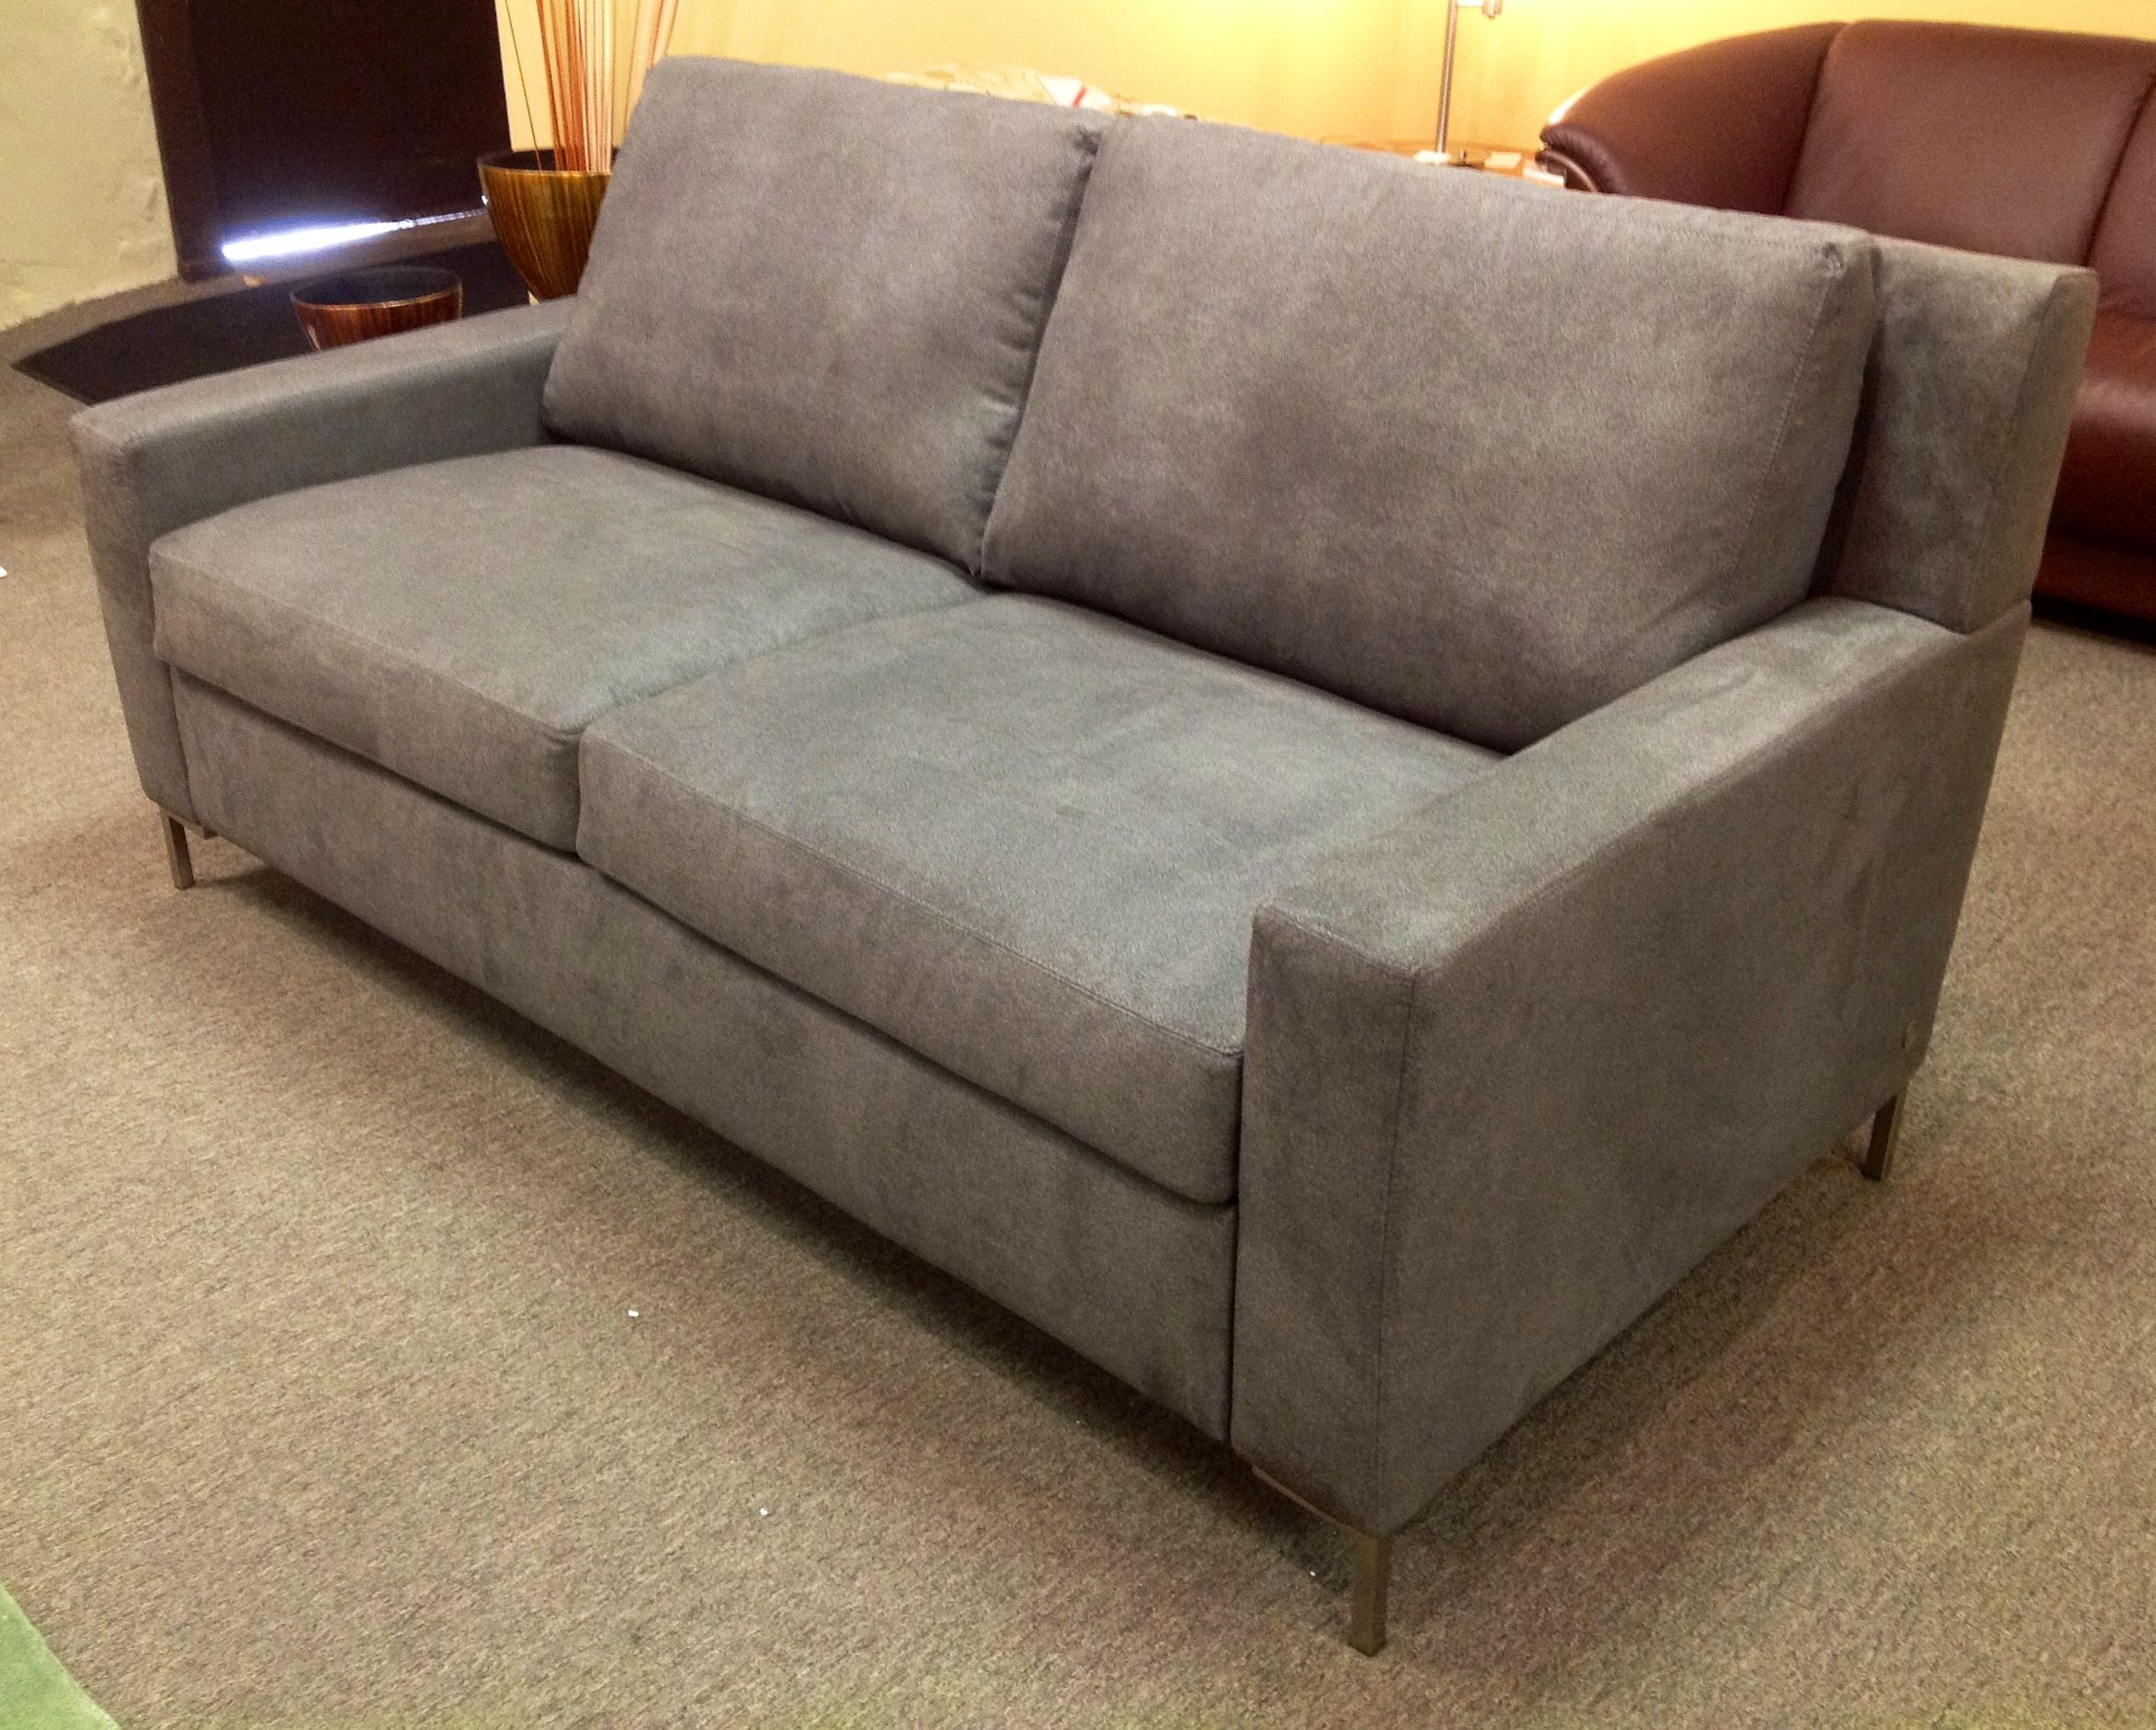 discount clearance of leather repair american sleeper used sets sofa pics awesome furniture